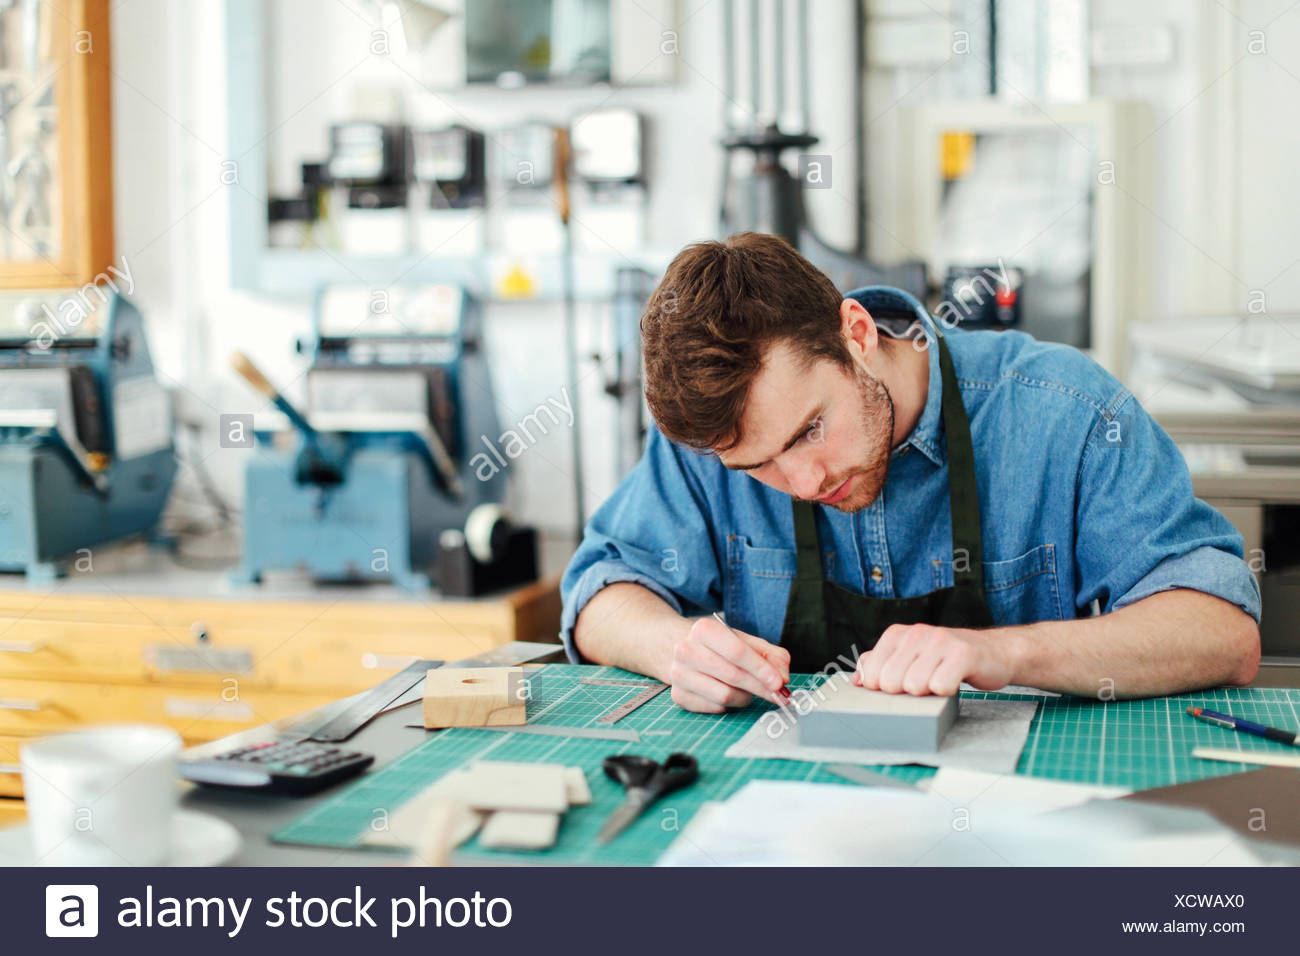 Young craftsman using scalpel and making work in print studio - Stock Image